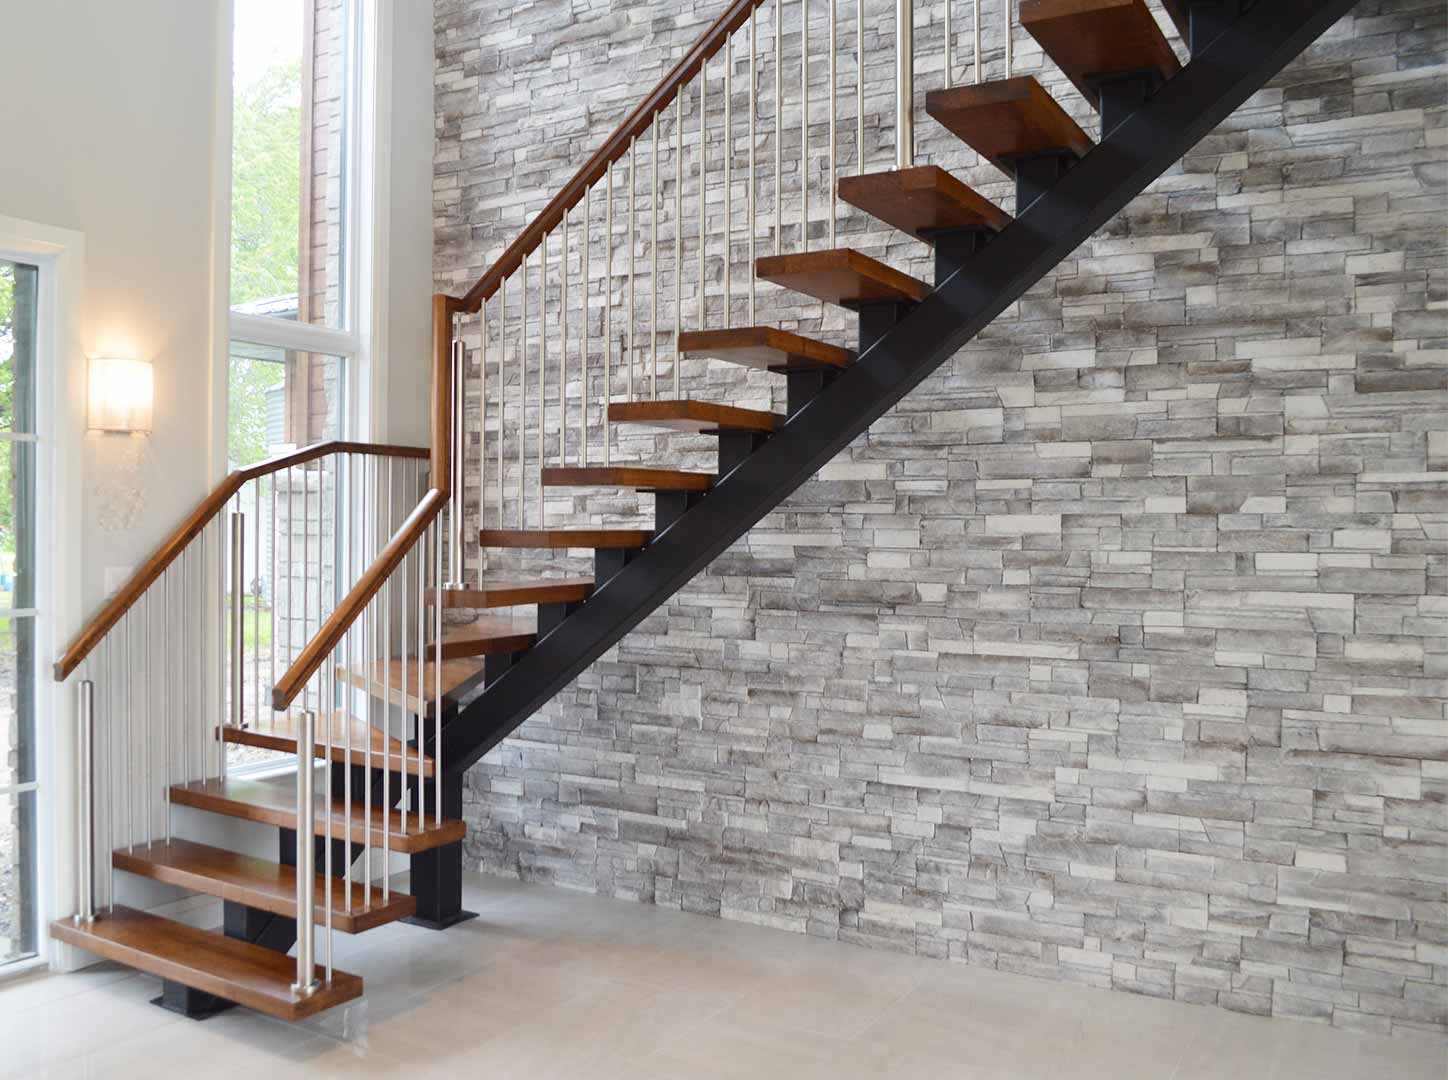 Metal Staircase with Wood Treads and Handrail